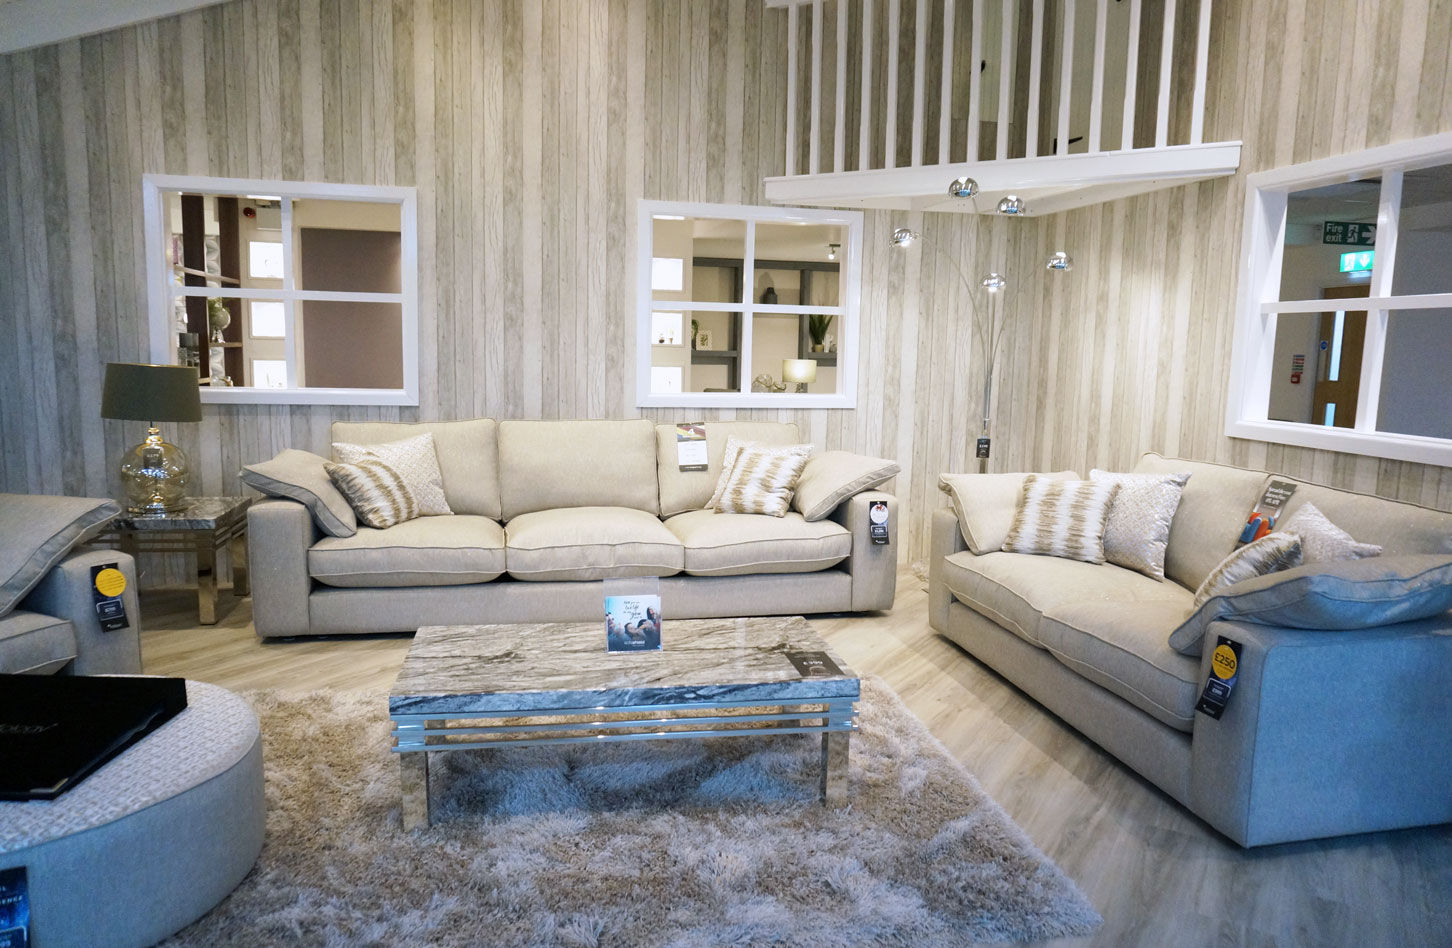 Home Interiors Choosing A Sofa With Sofology